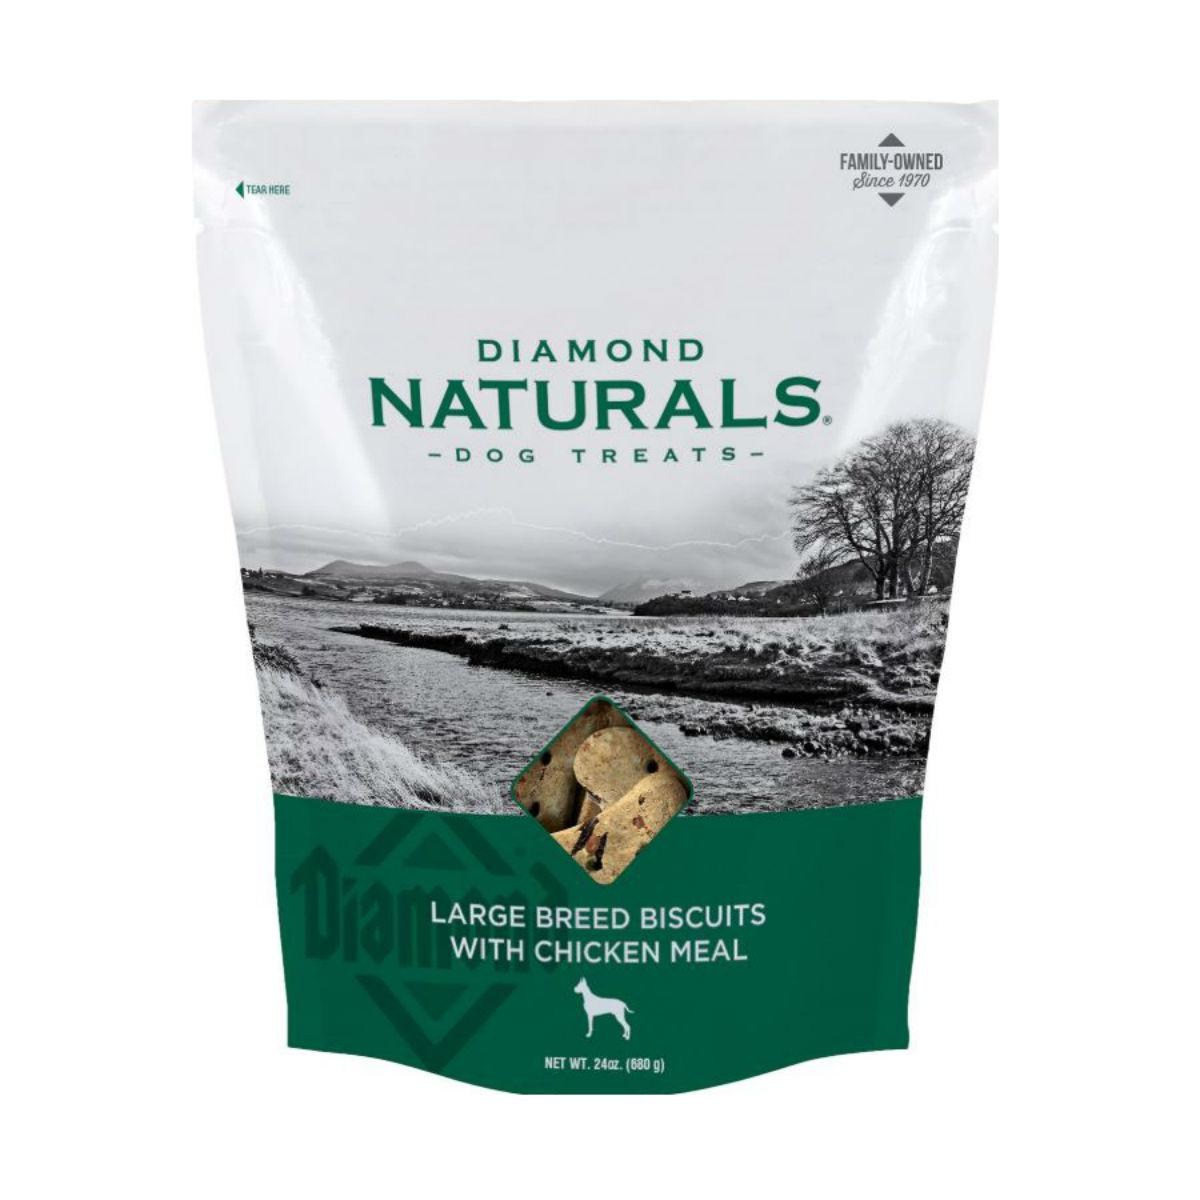 Diamond Naturals Large Breed Dog Biscuits - Chicken and Glucosamine